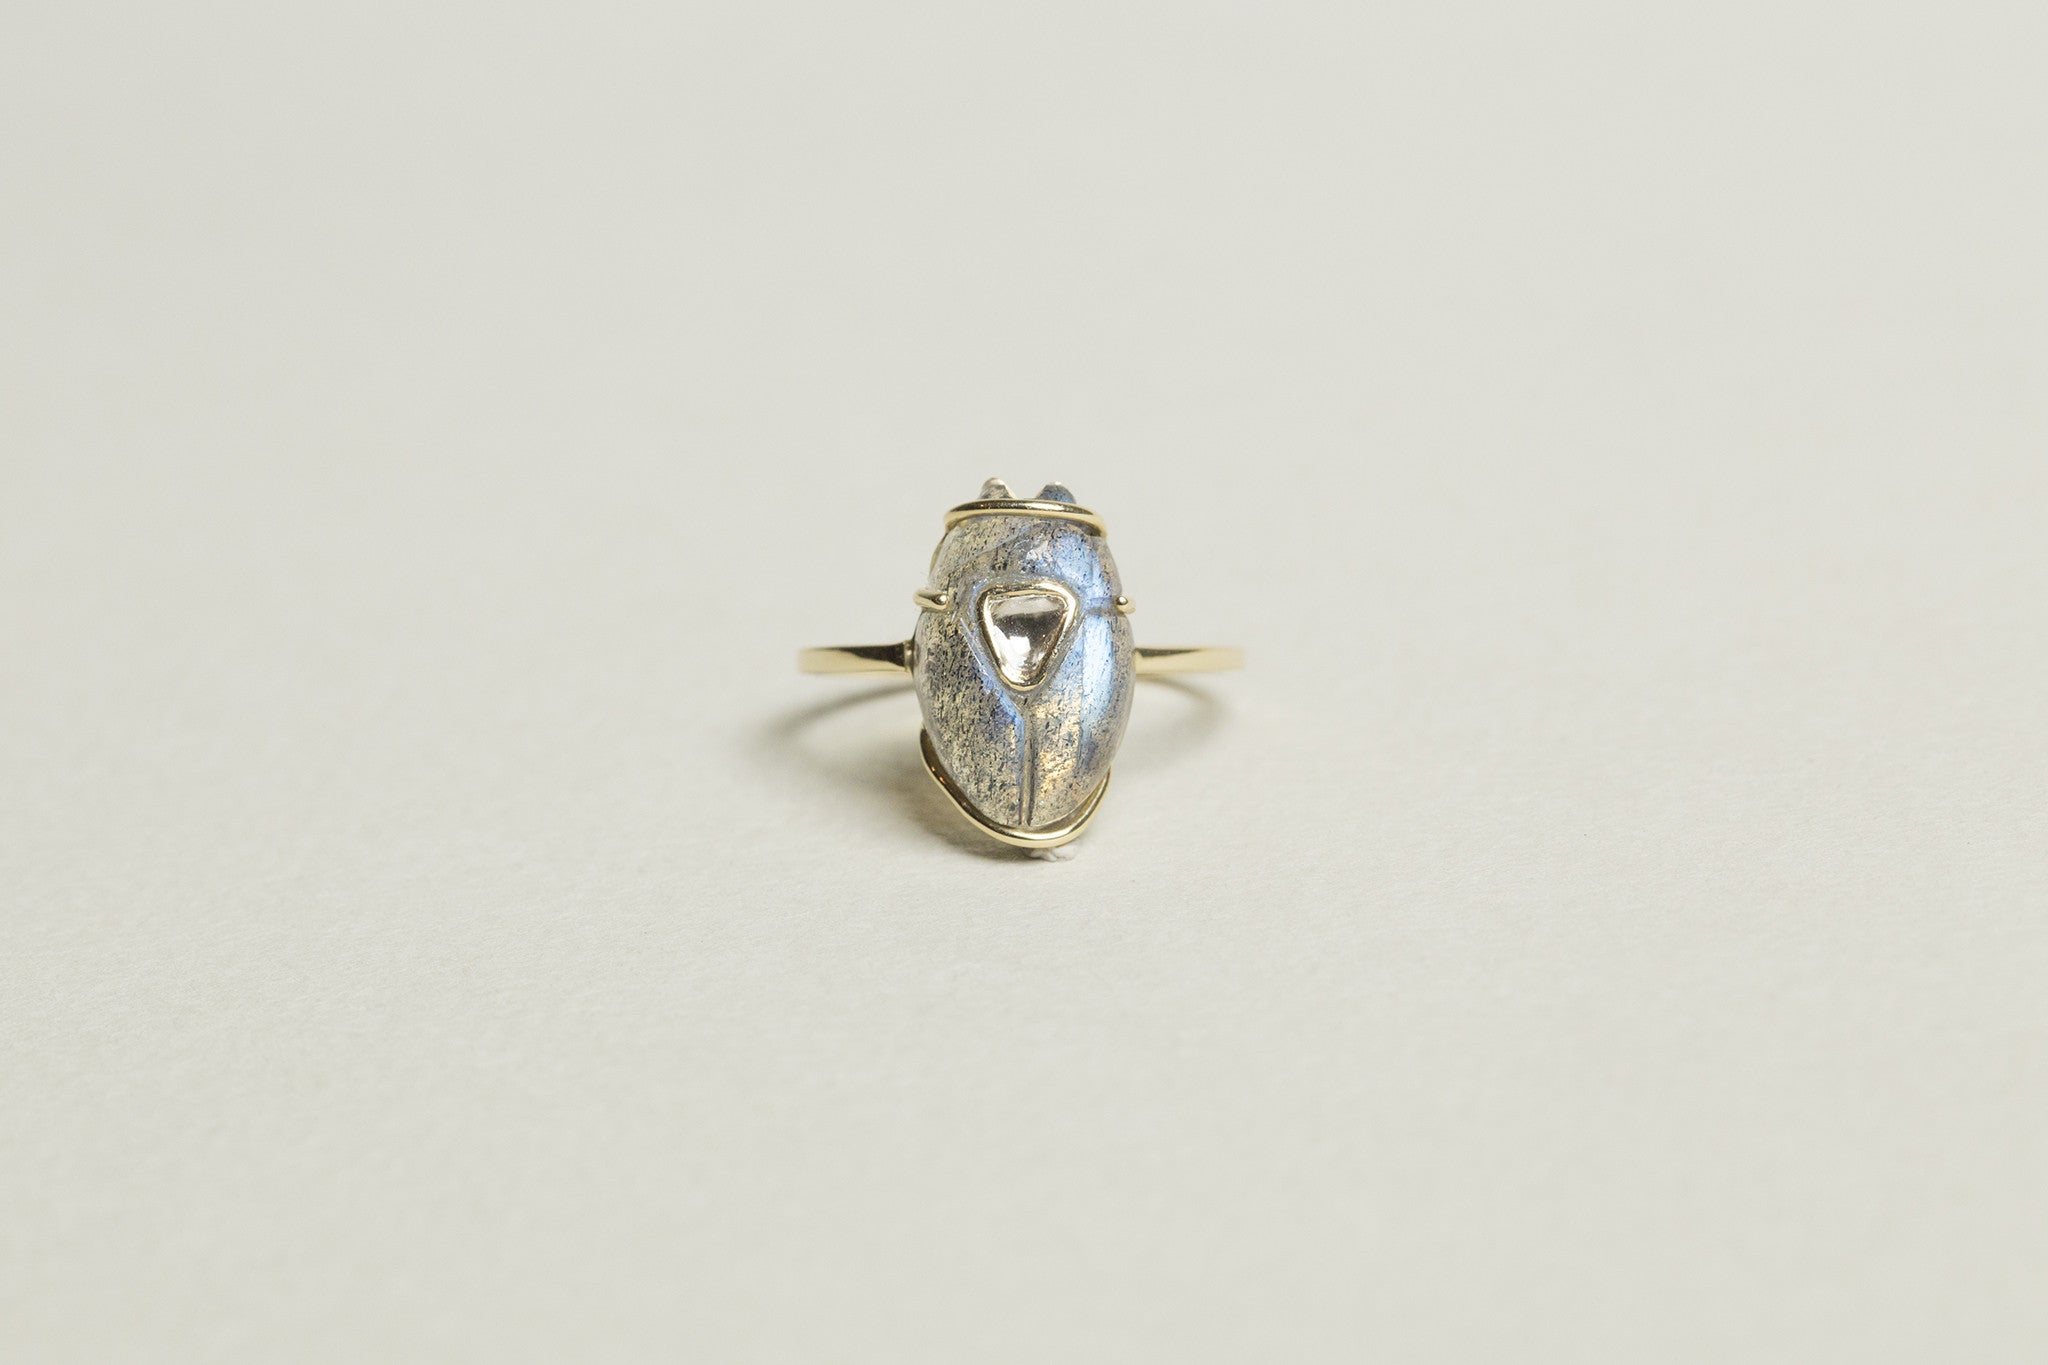 from the same collection - slightly bigger in size - the scarab diamond ring available on feltlondon.com!